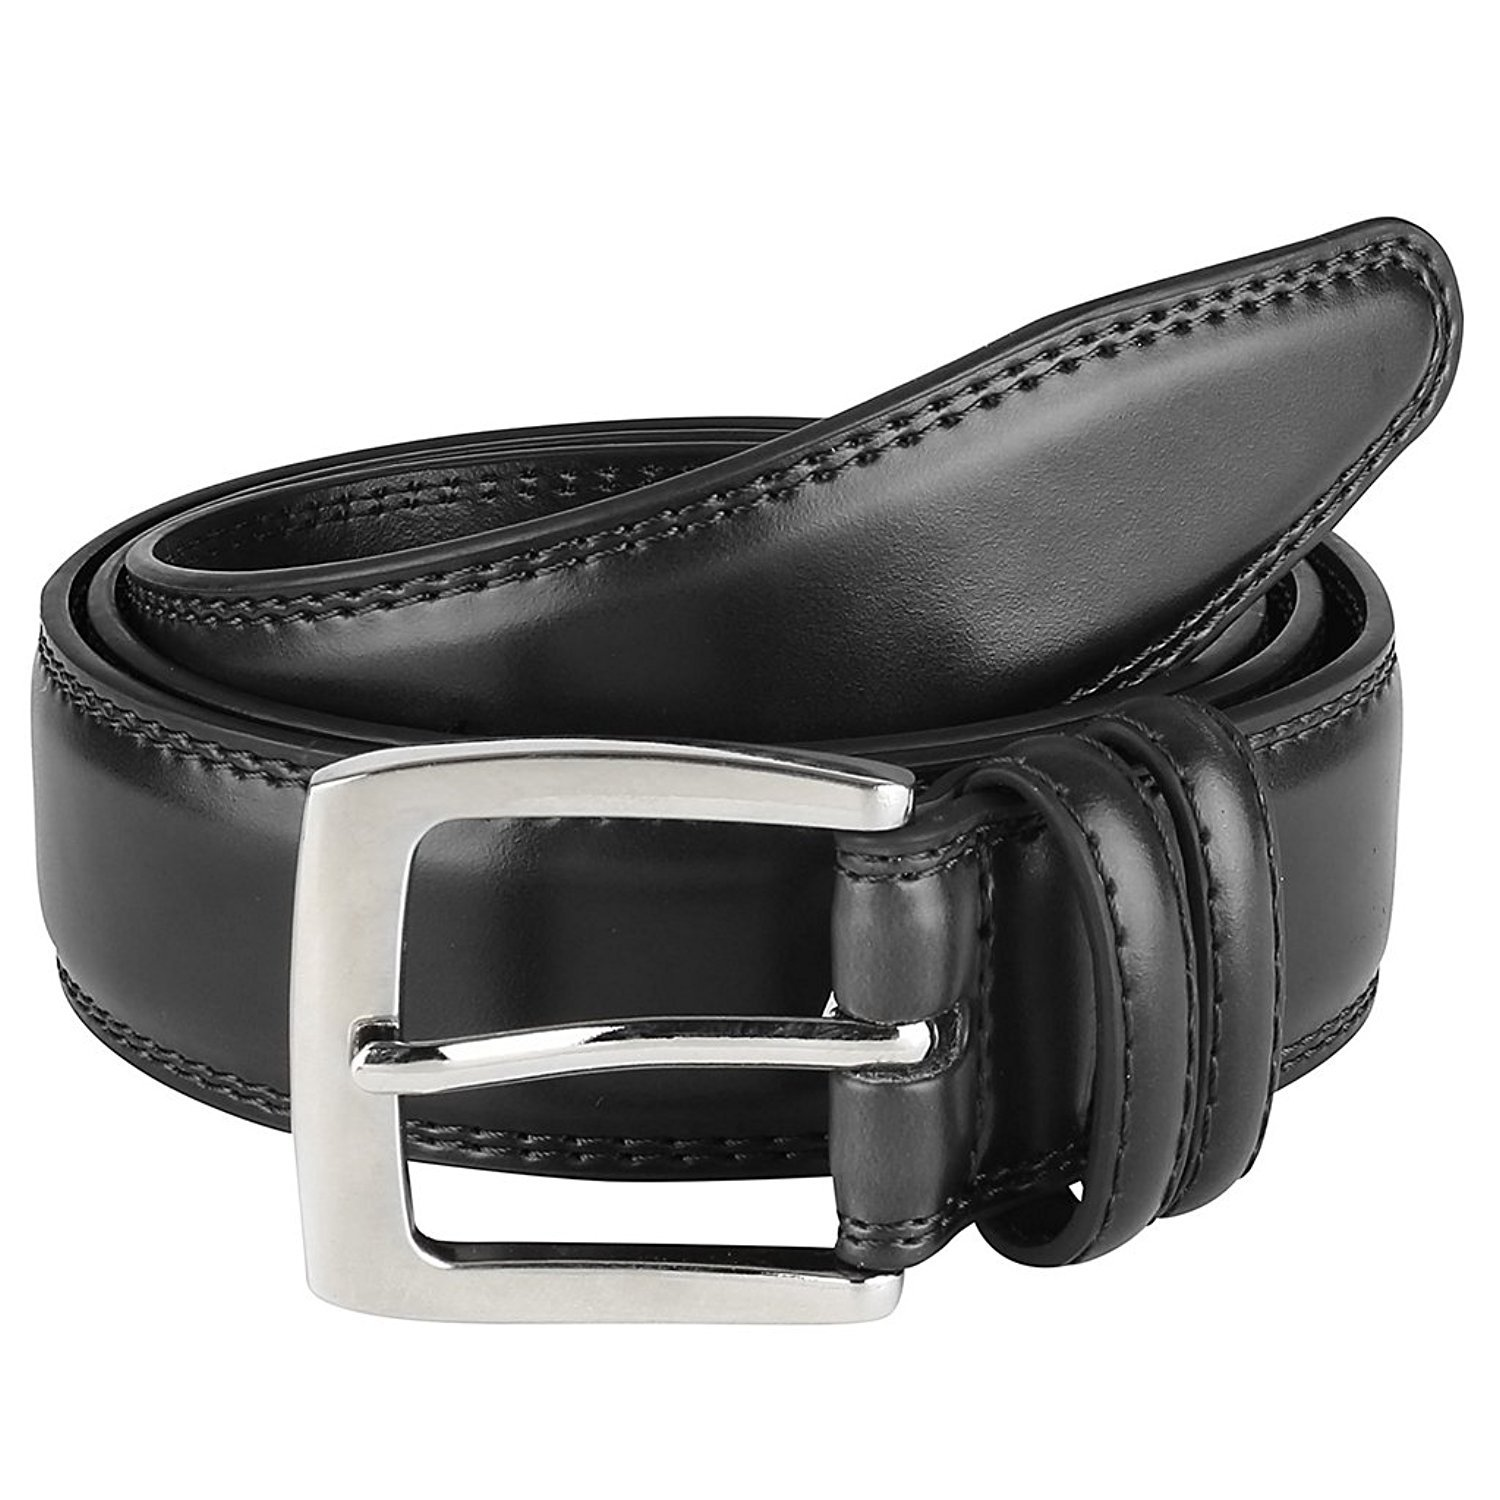 d205961e476 Men s Dress Belt ALL Genuine Leather Double Stitch Classic Design 35mm All  Sizes Regular Big and